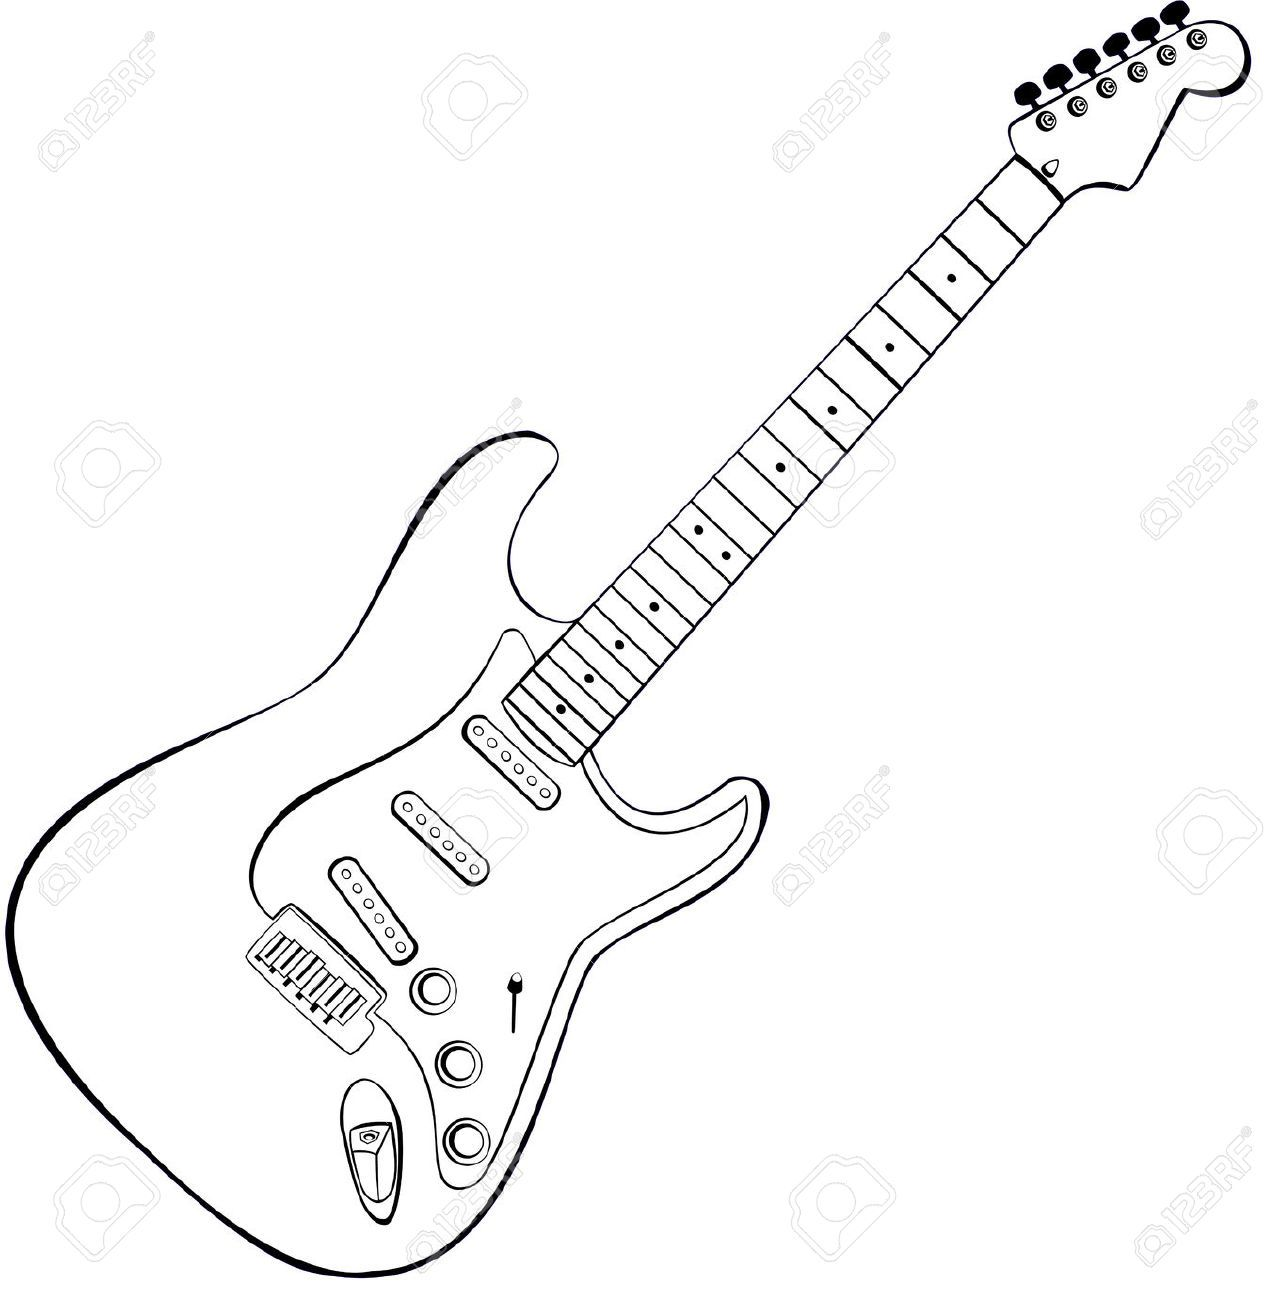 Electric Guitar Drawings Cerca Con Google Guitar Drawing Guitar Sketch Guitar Outline